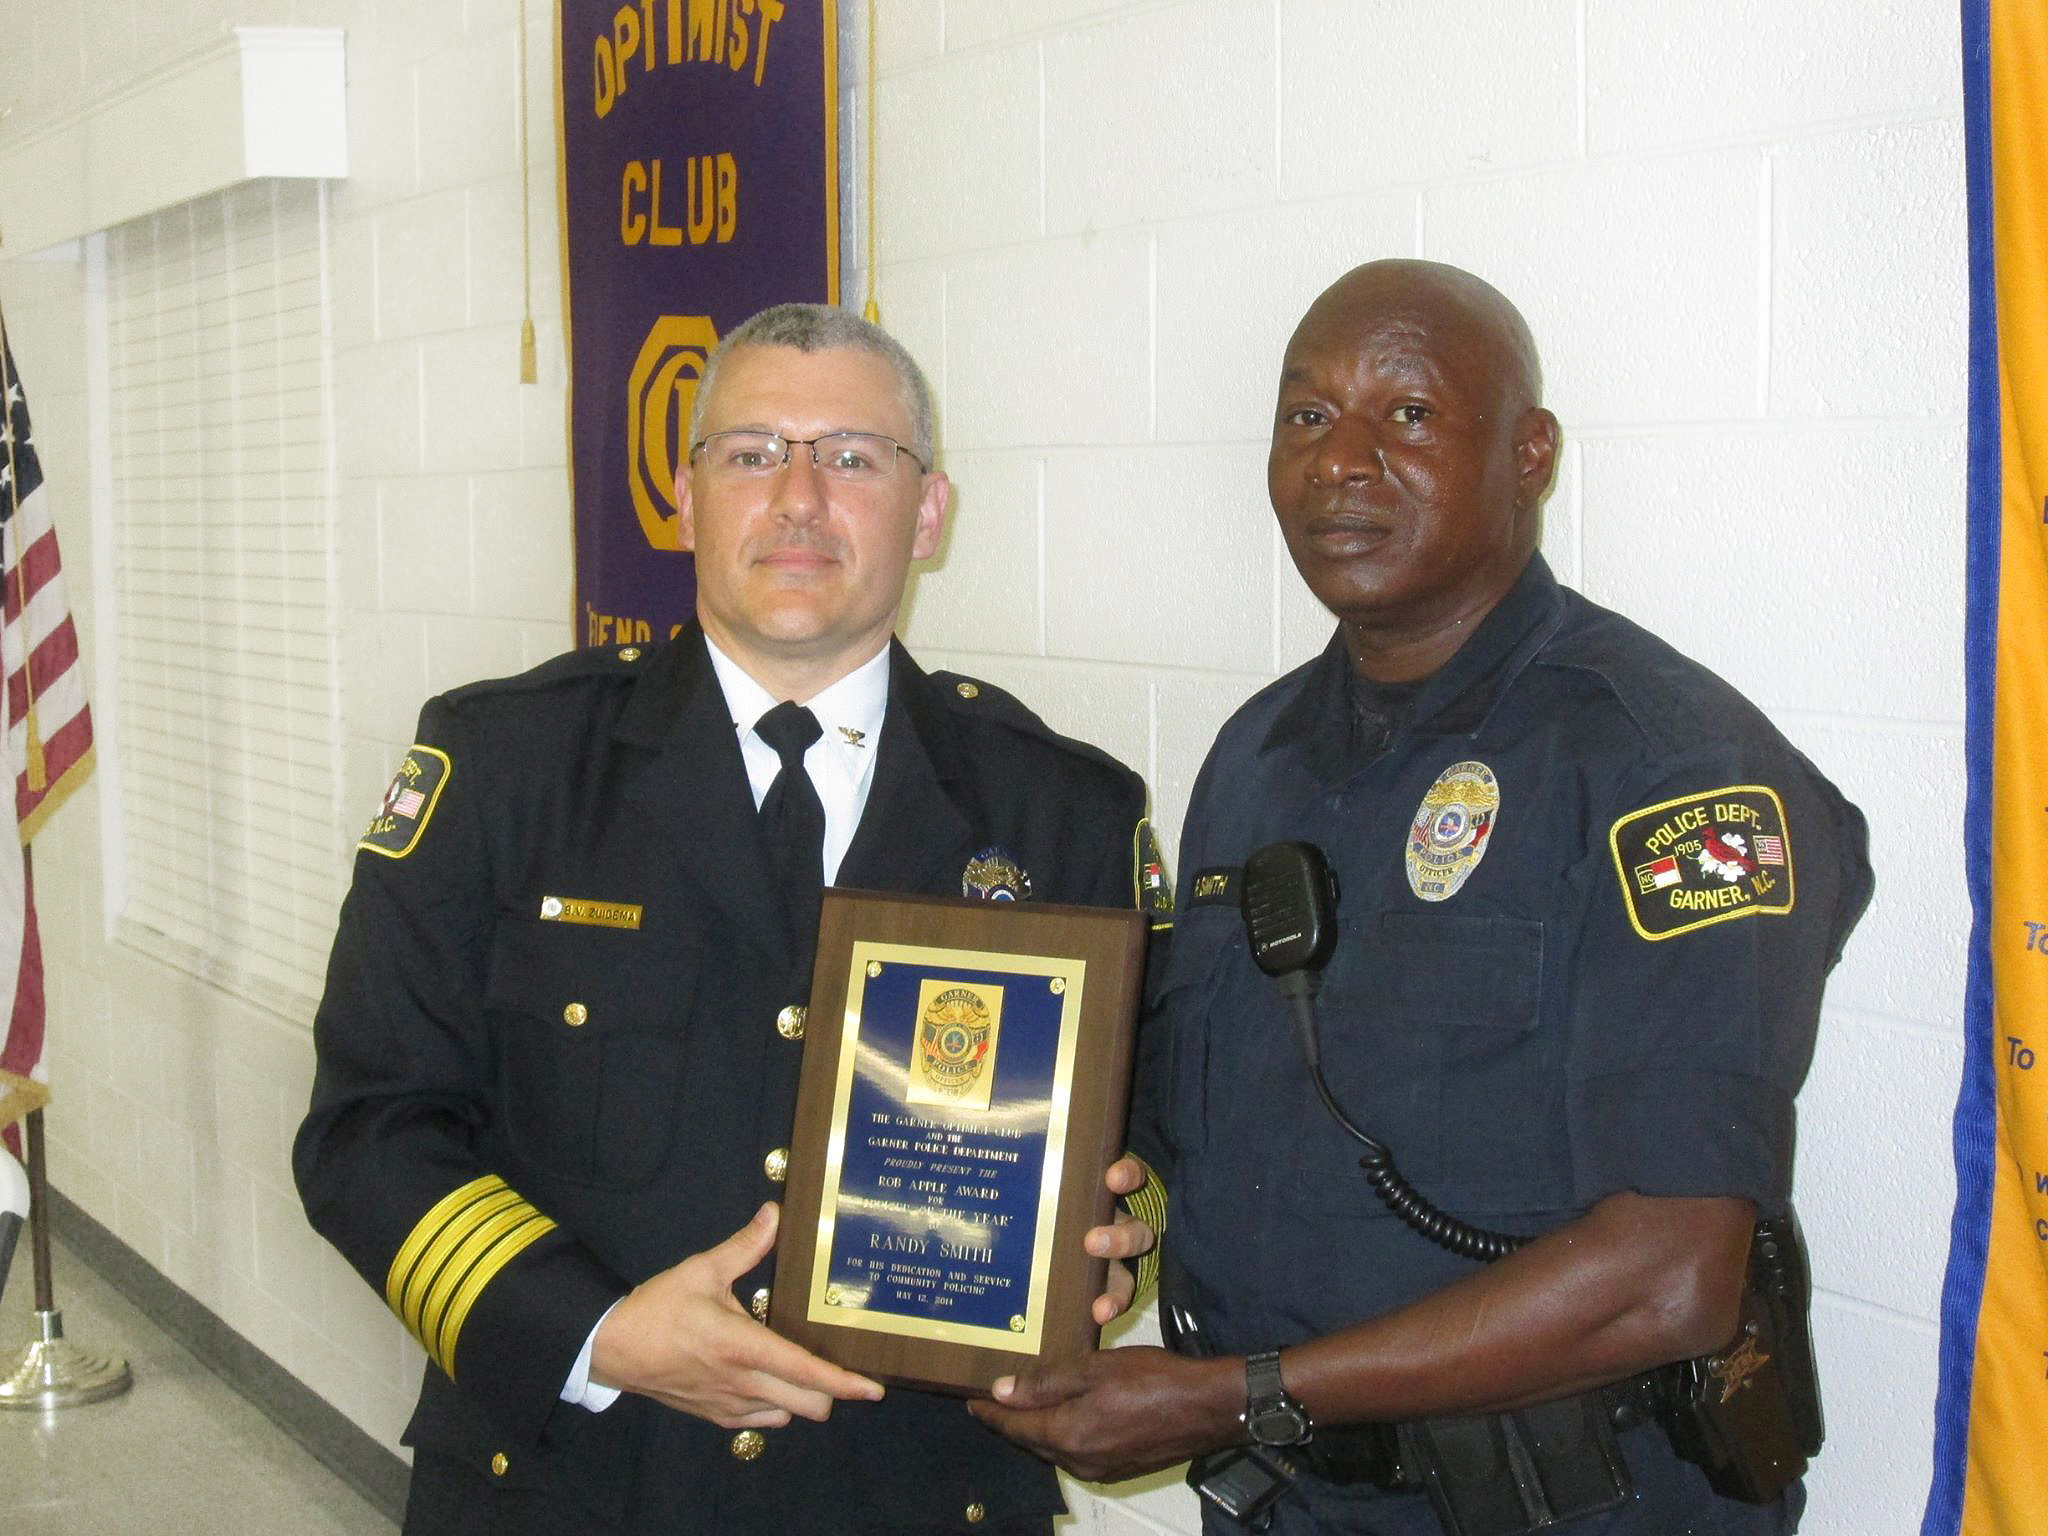 Garner Optimist Club hosted Respect For Law Dinner.Chief Brandon Zuidema Presented Randy Smith, Officer Of The Year Award.